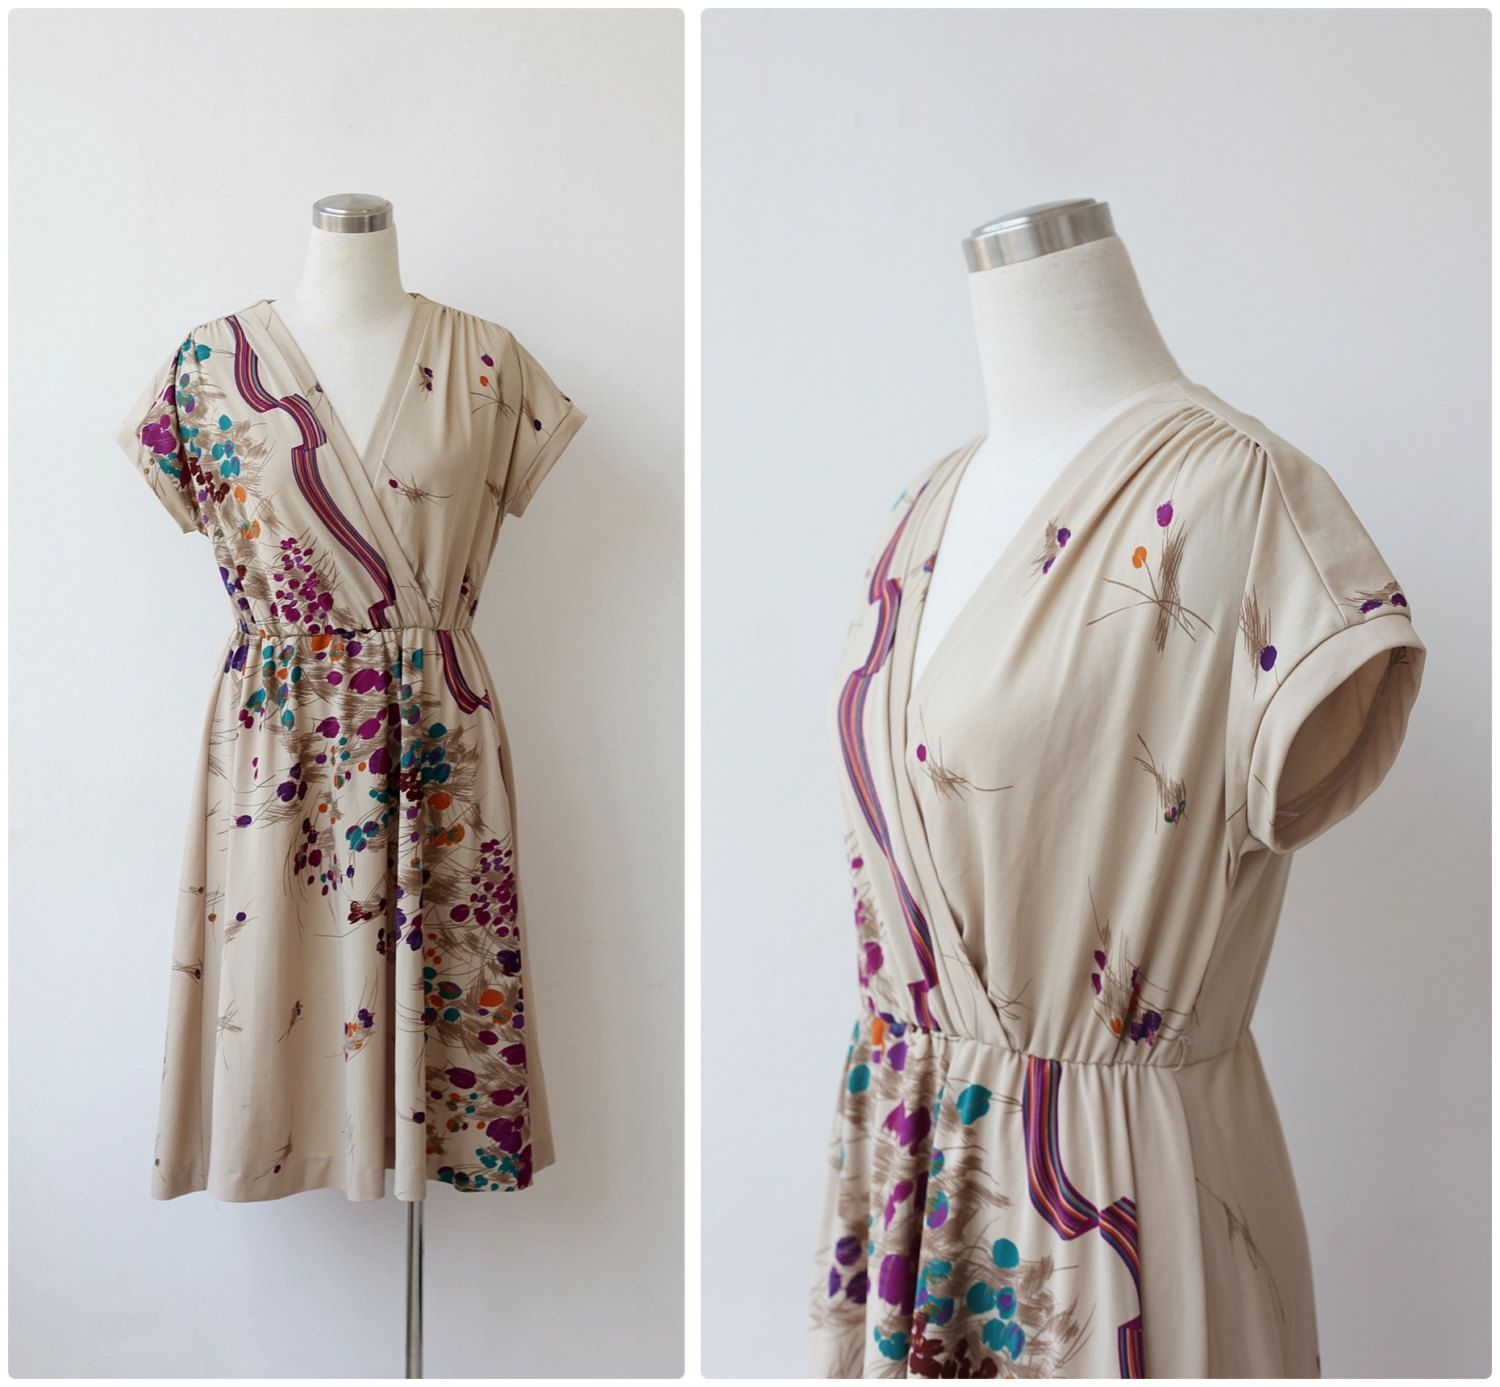 Vintage 1970s Dress Floral Dress Beige Midi Day Dress Boho Dress 70s dress Large by prvtcollection on Etsy